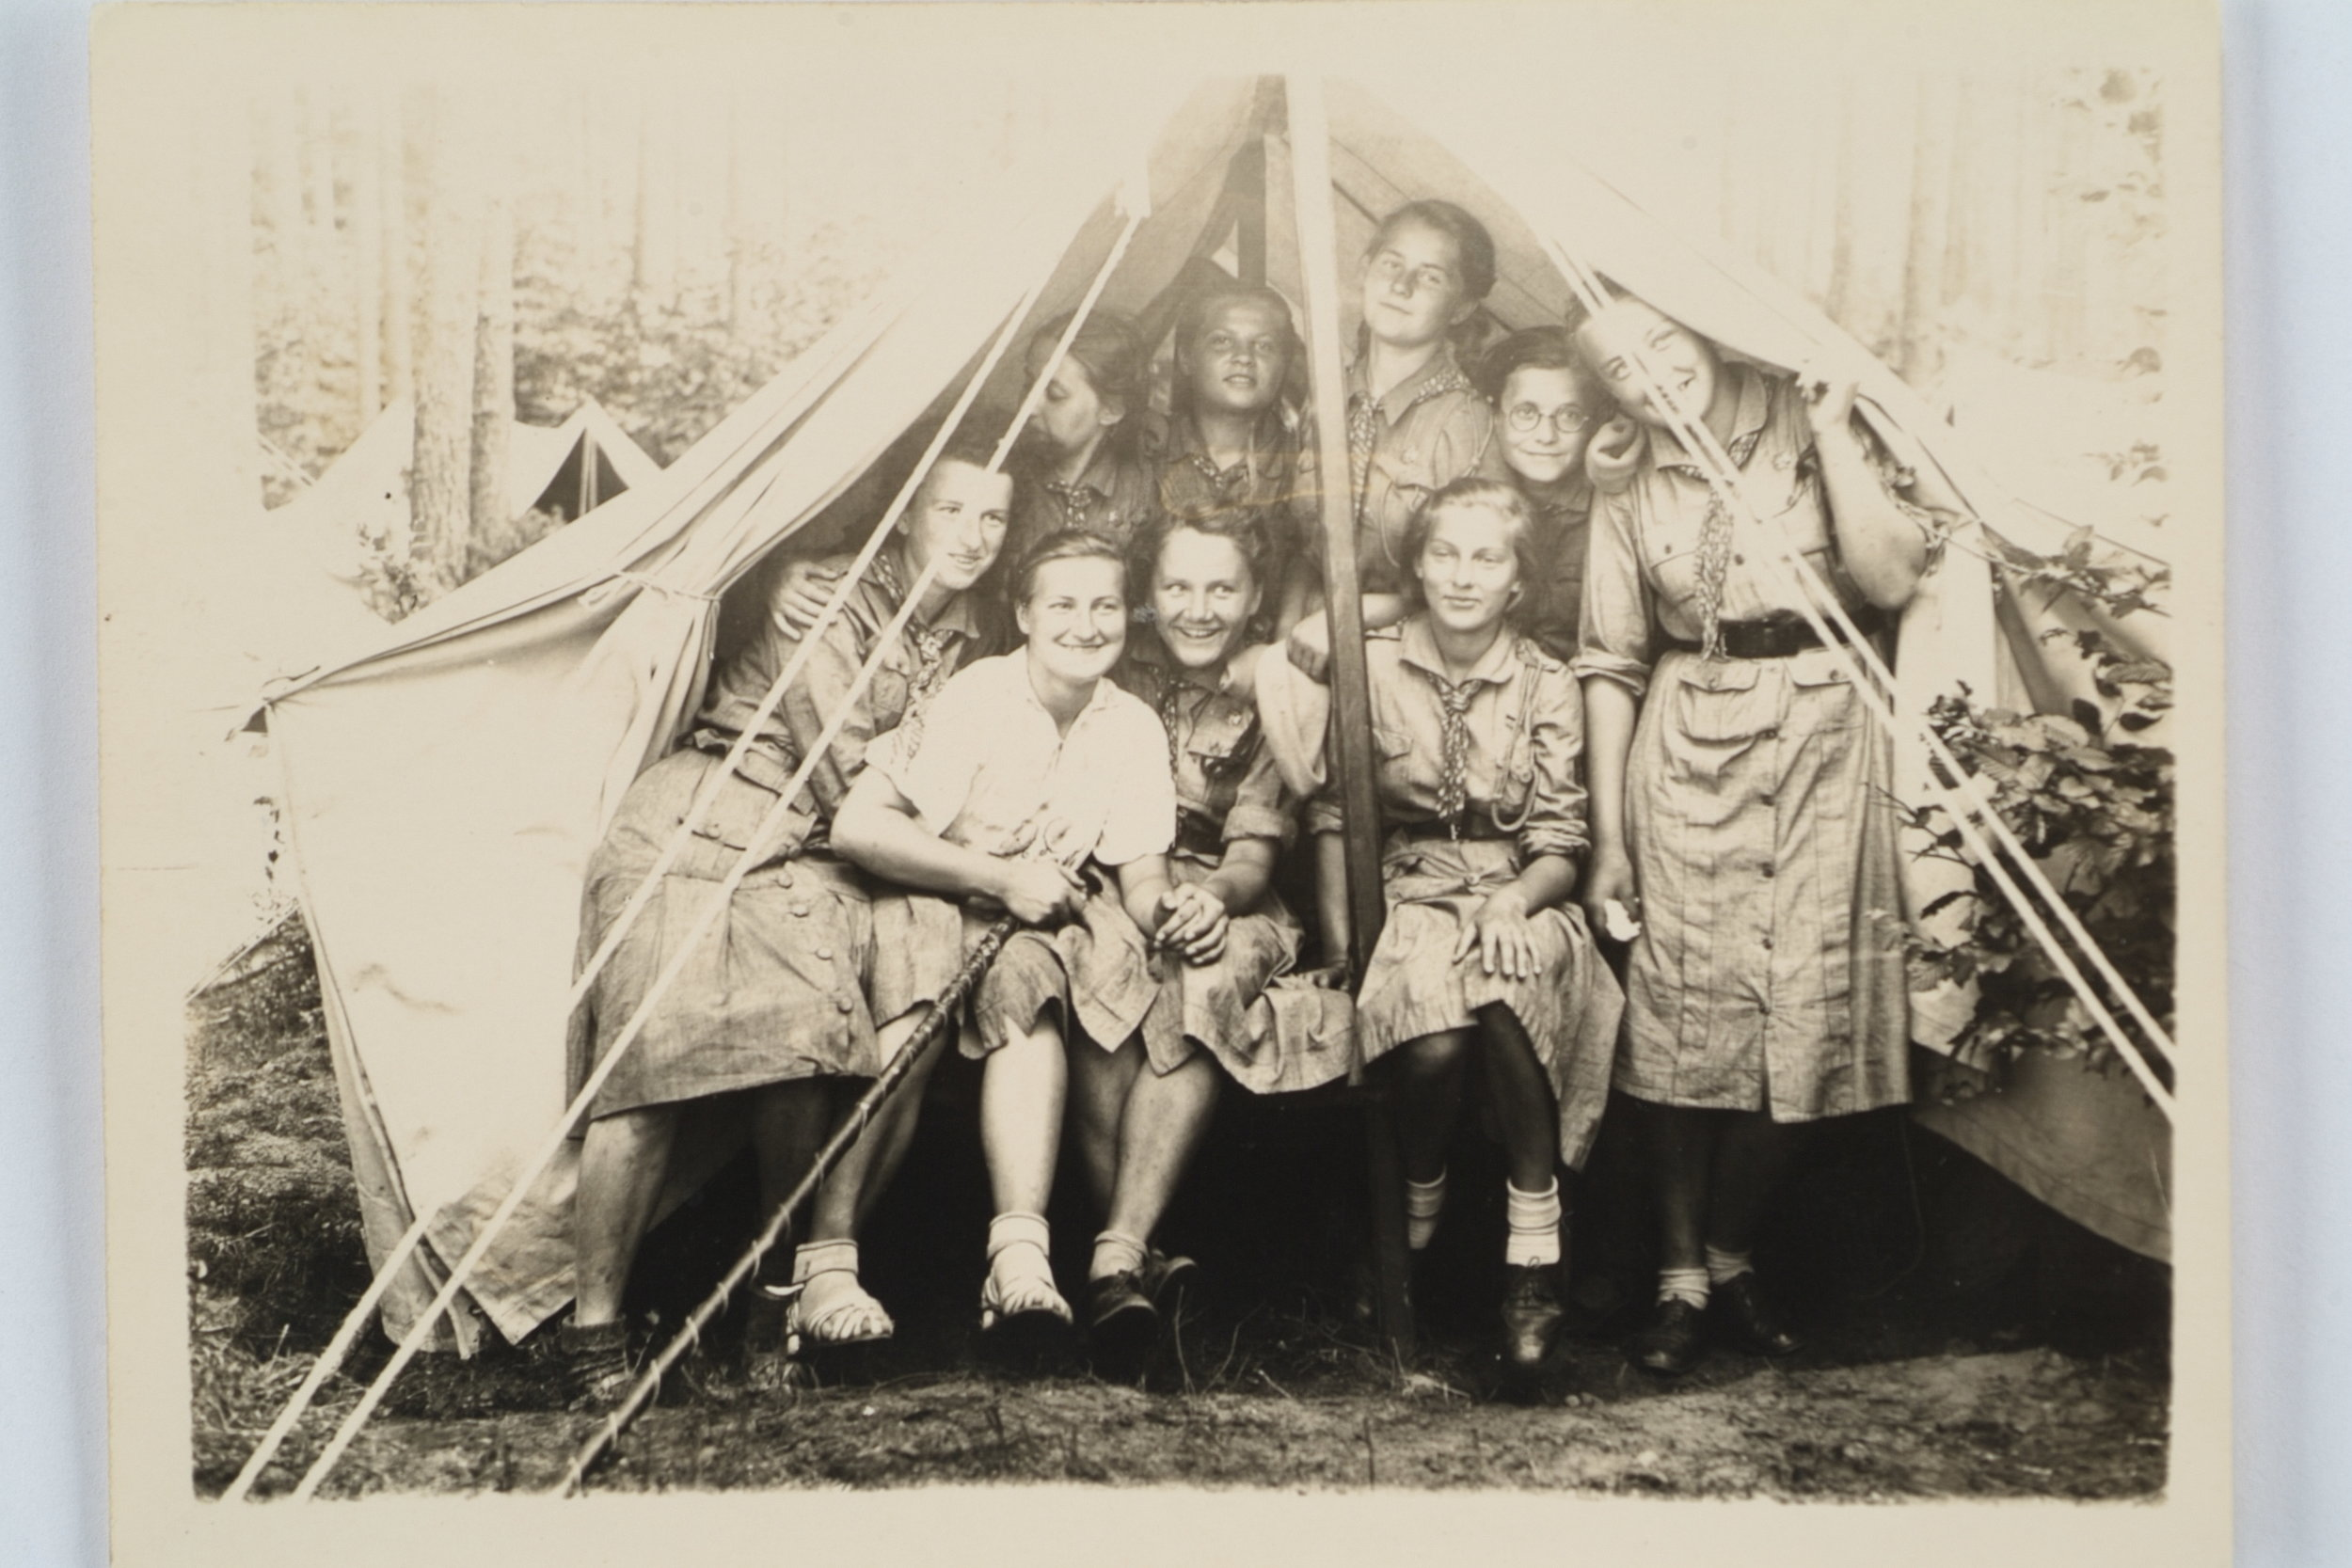 Wanda Poltawska with her Girl Scout Troop